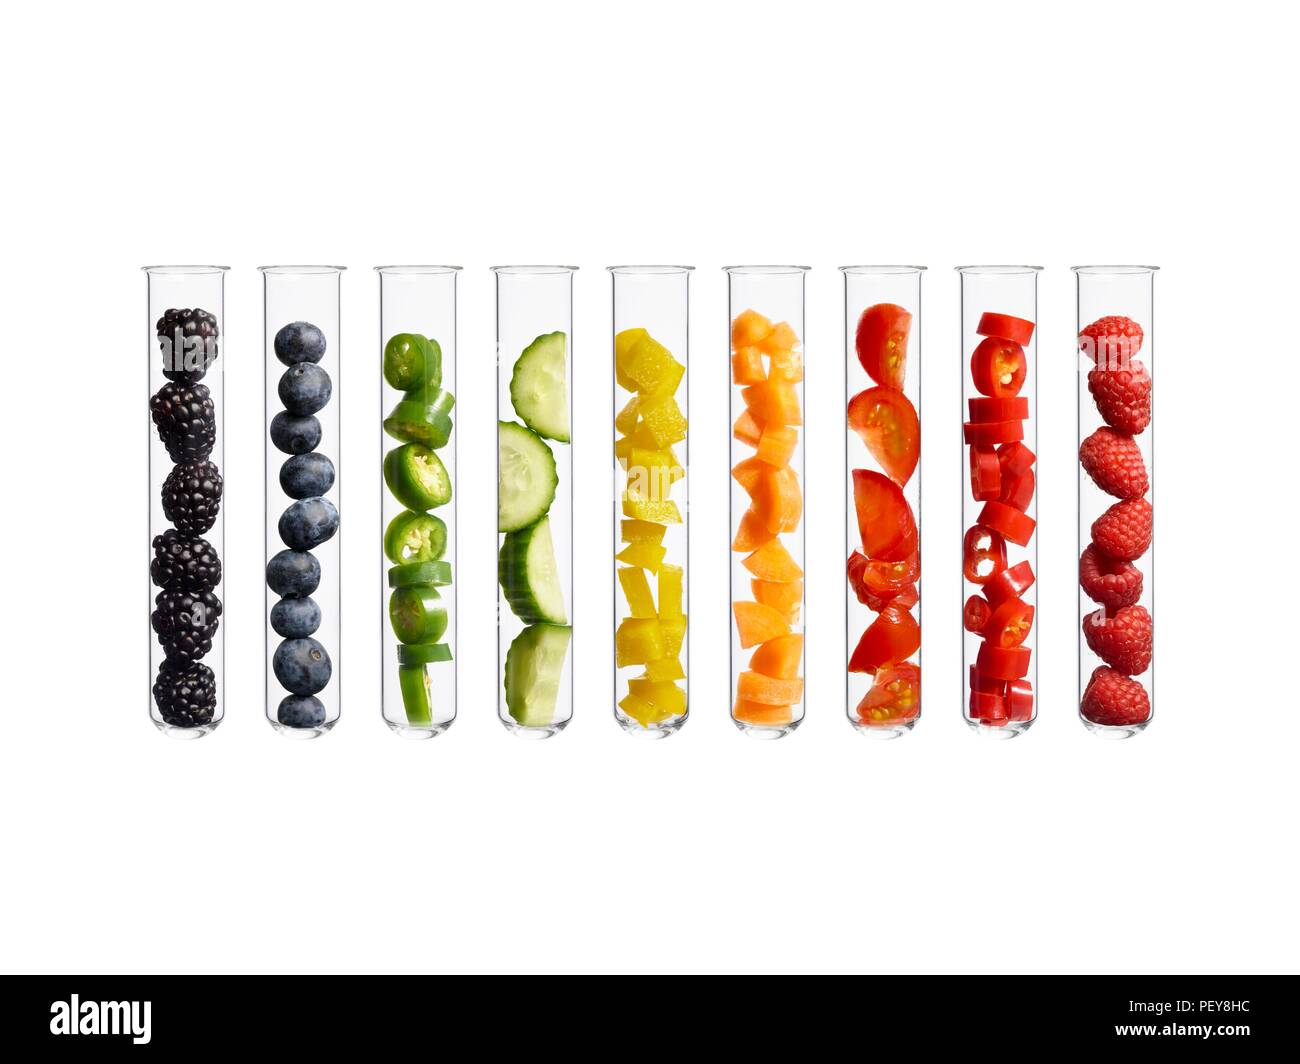 Fruits and vegetables in test tubes, studio shot. - Stock Image